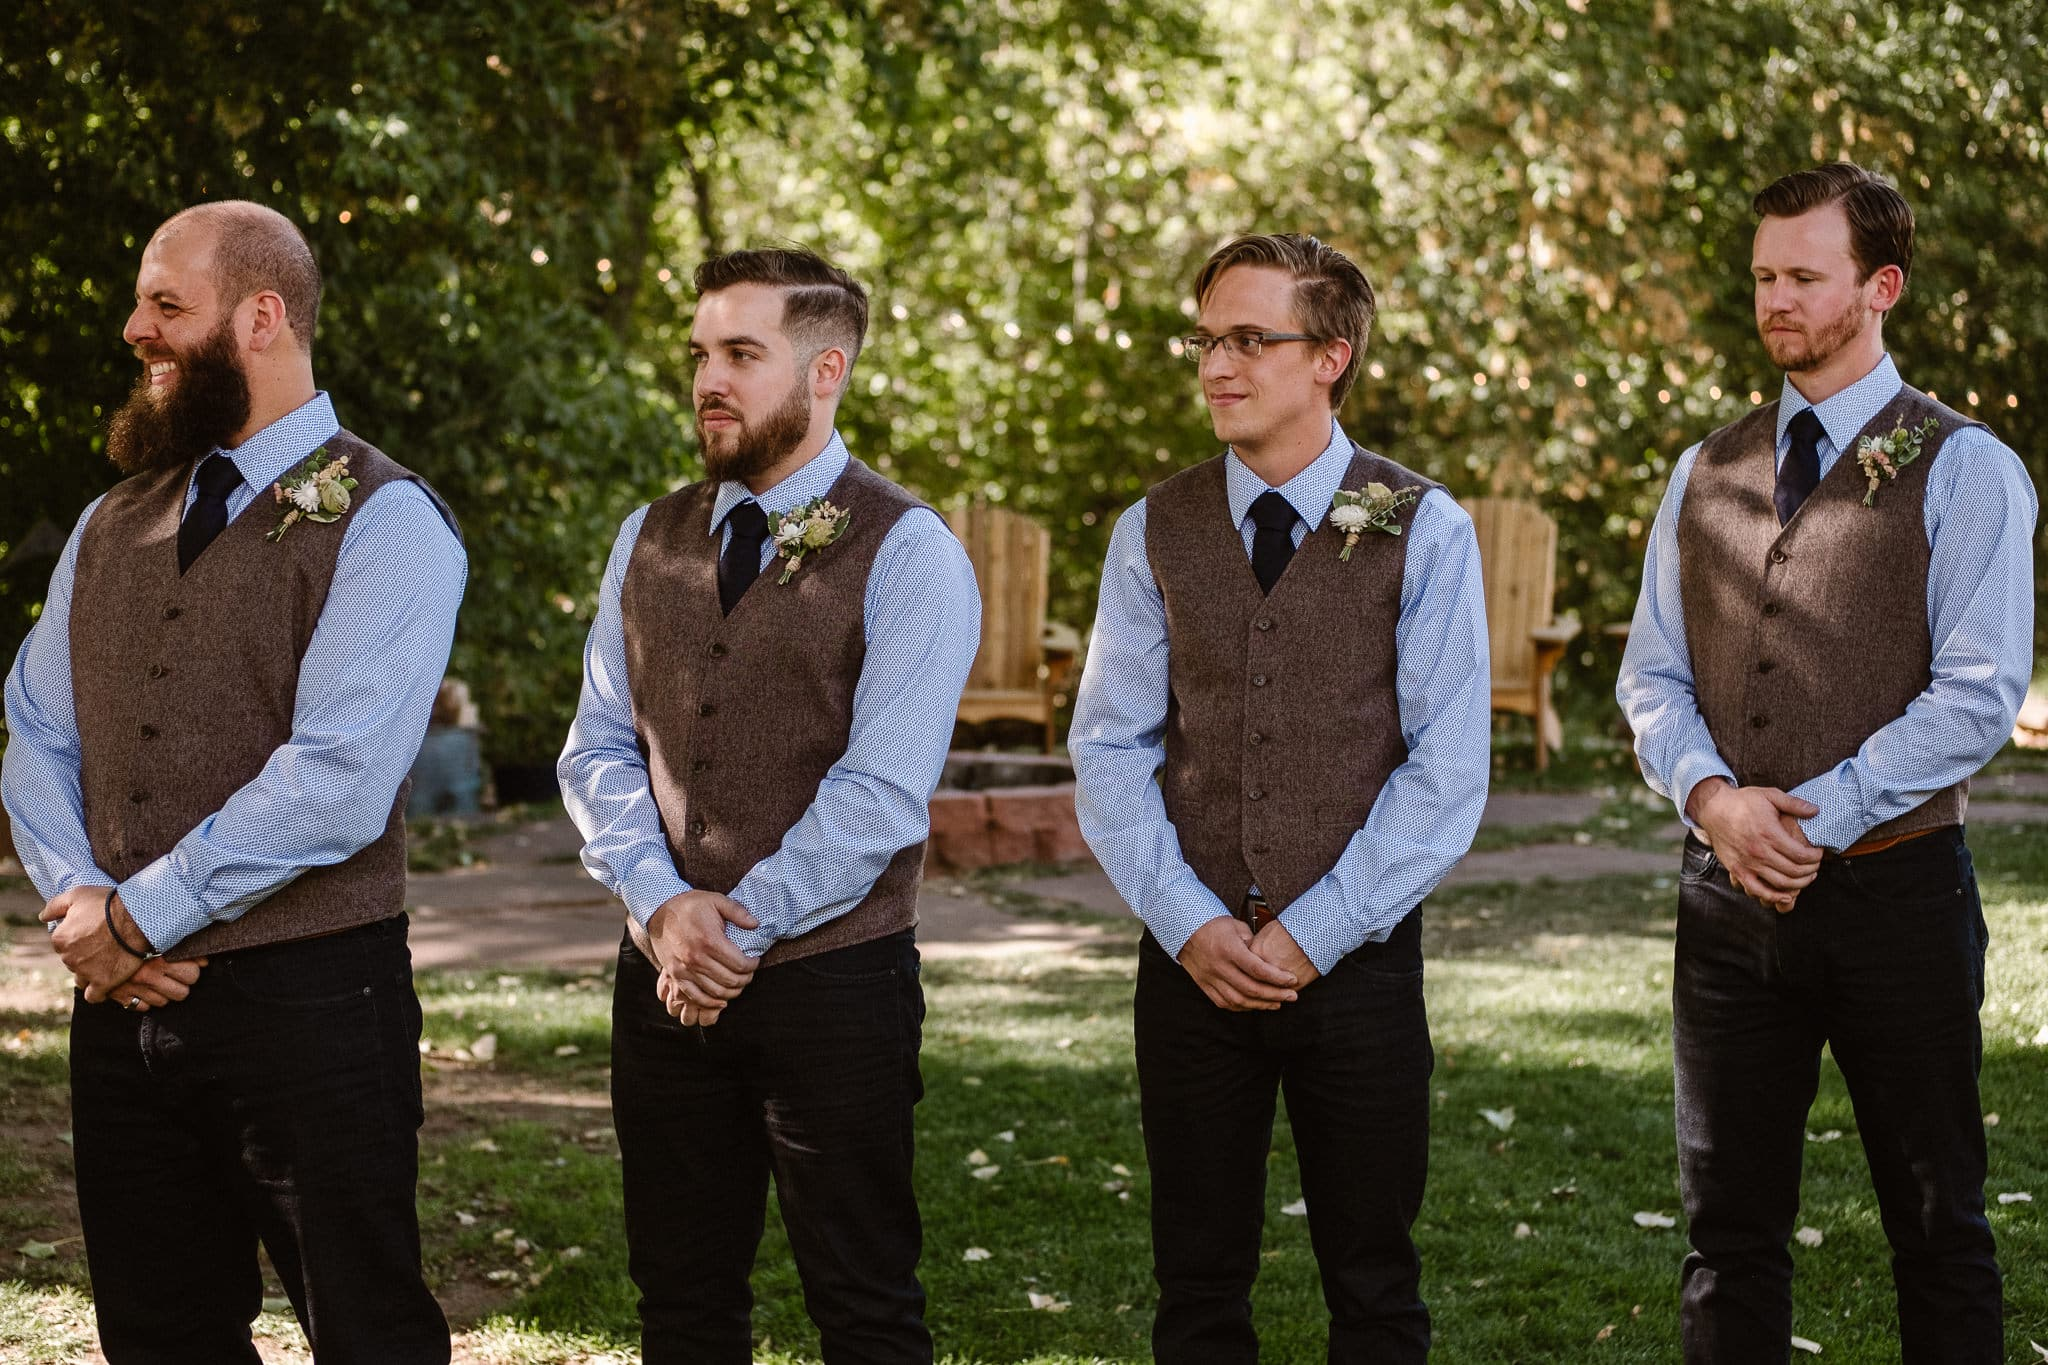 Lyons Farmette wedding photographer, Colorado intimate wedding photographer, wedding ceremony, groomsmen